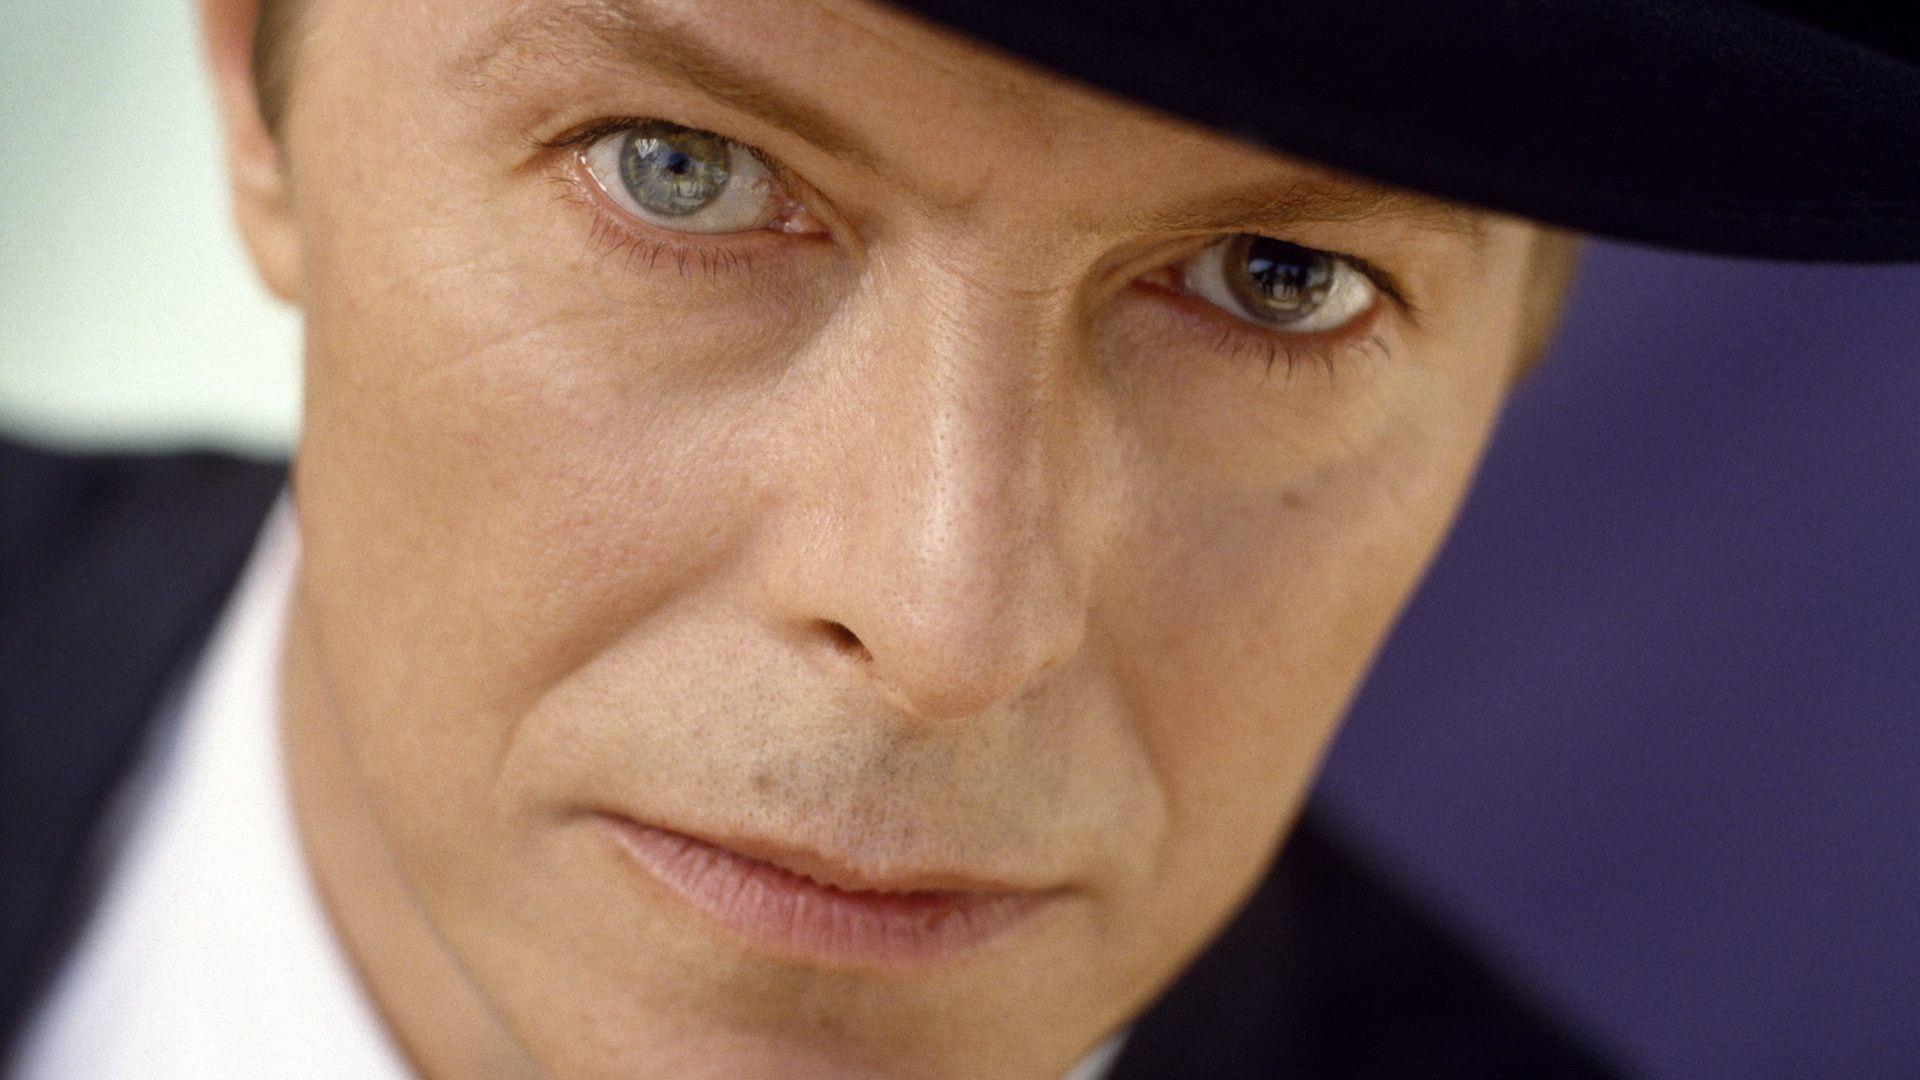 Direct Link David Bowie Wallpaper 1920x1080 | Hot HD Wallpaper